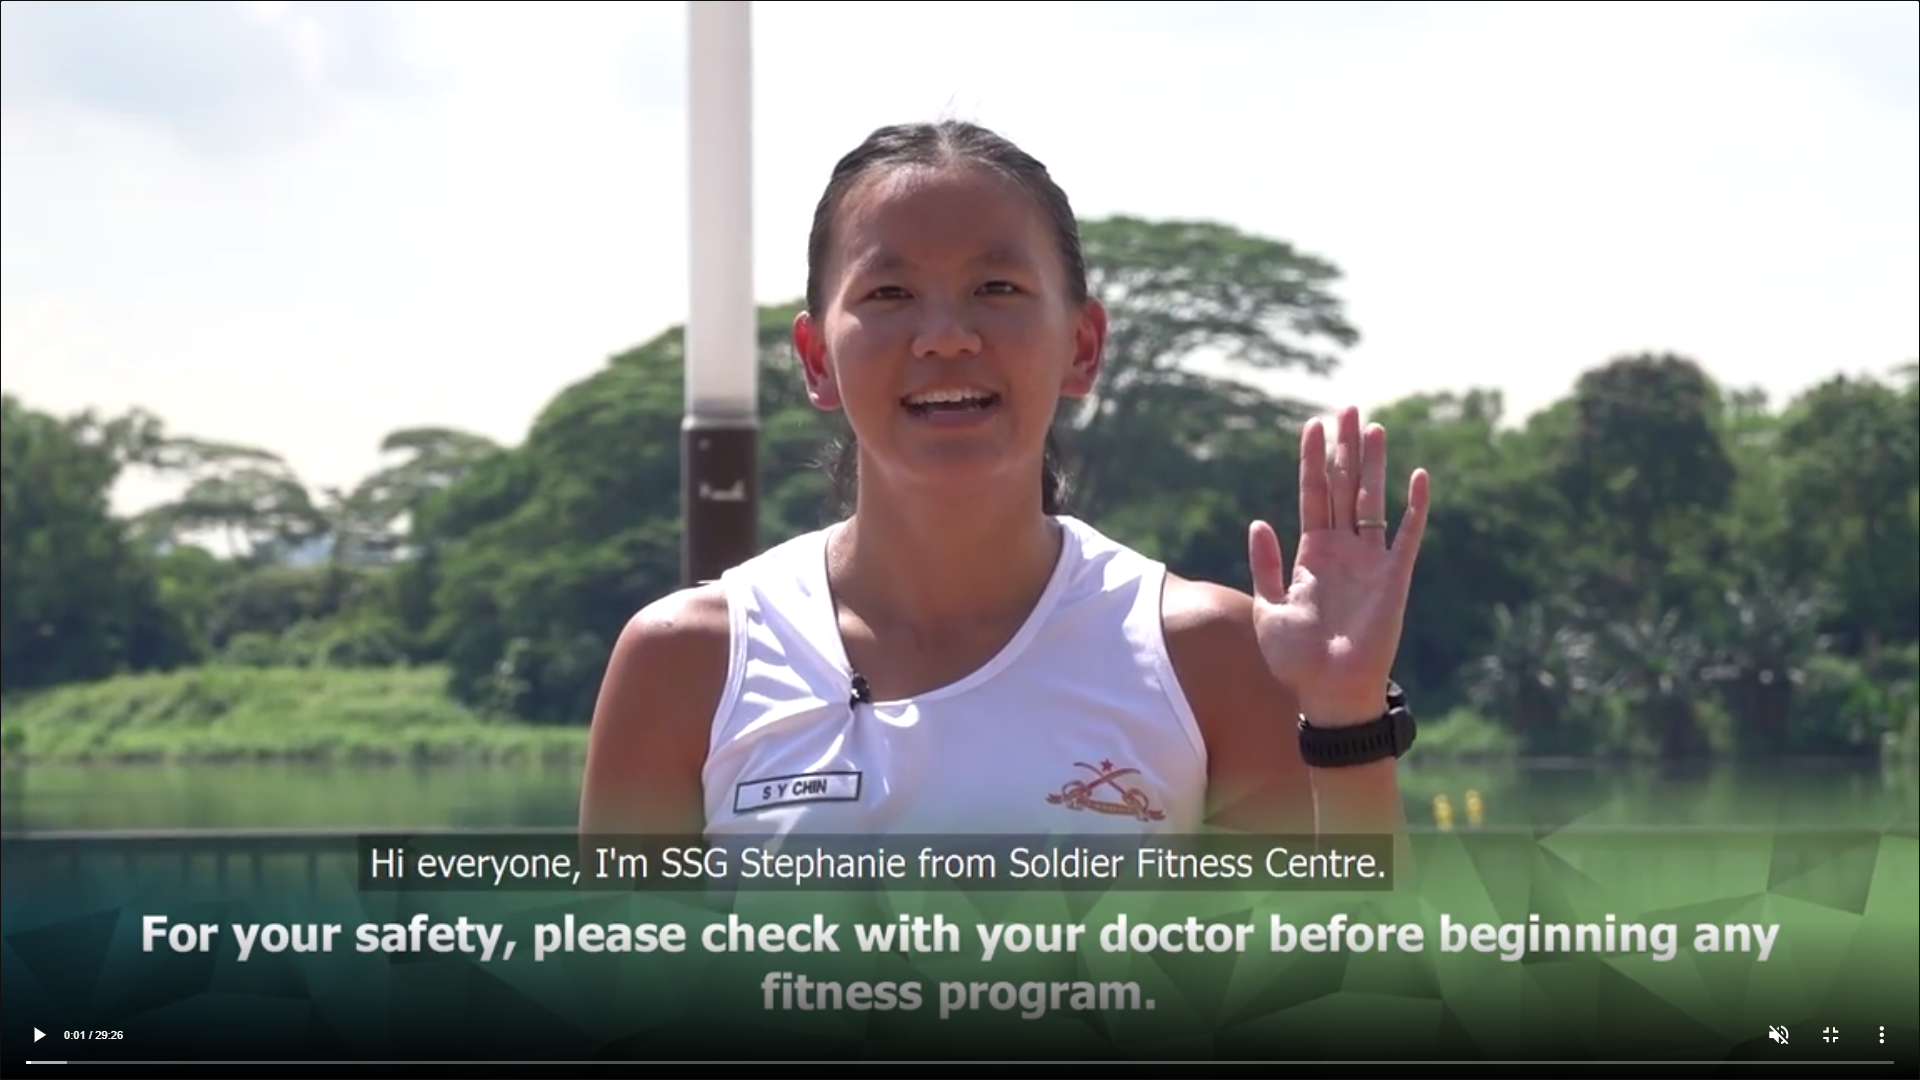 Soldier Fitness Centre